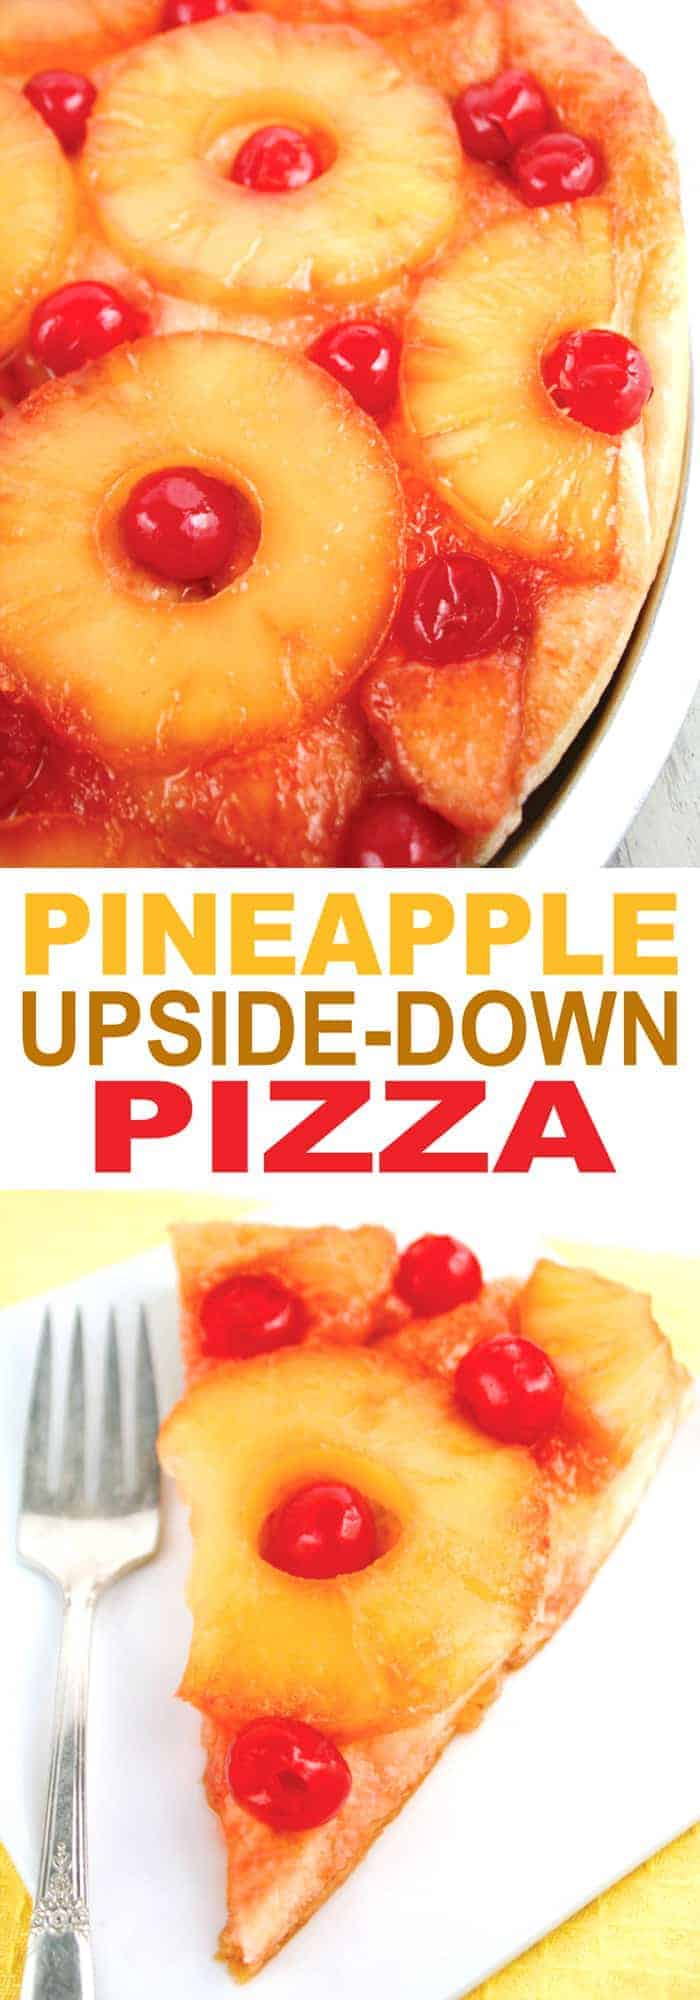 Pineapple-Upside-Down-Pizza-Long